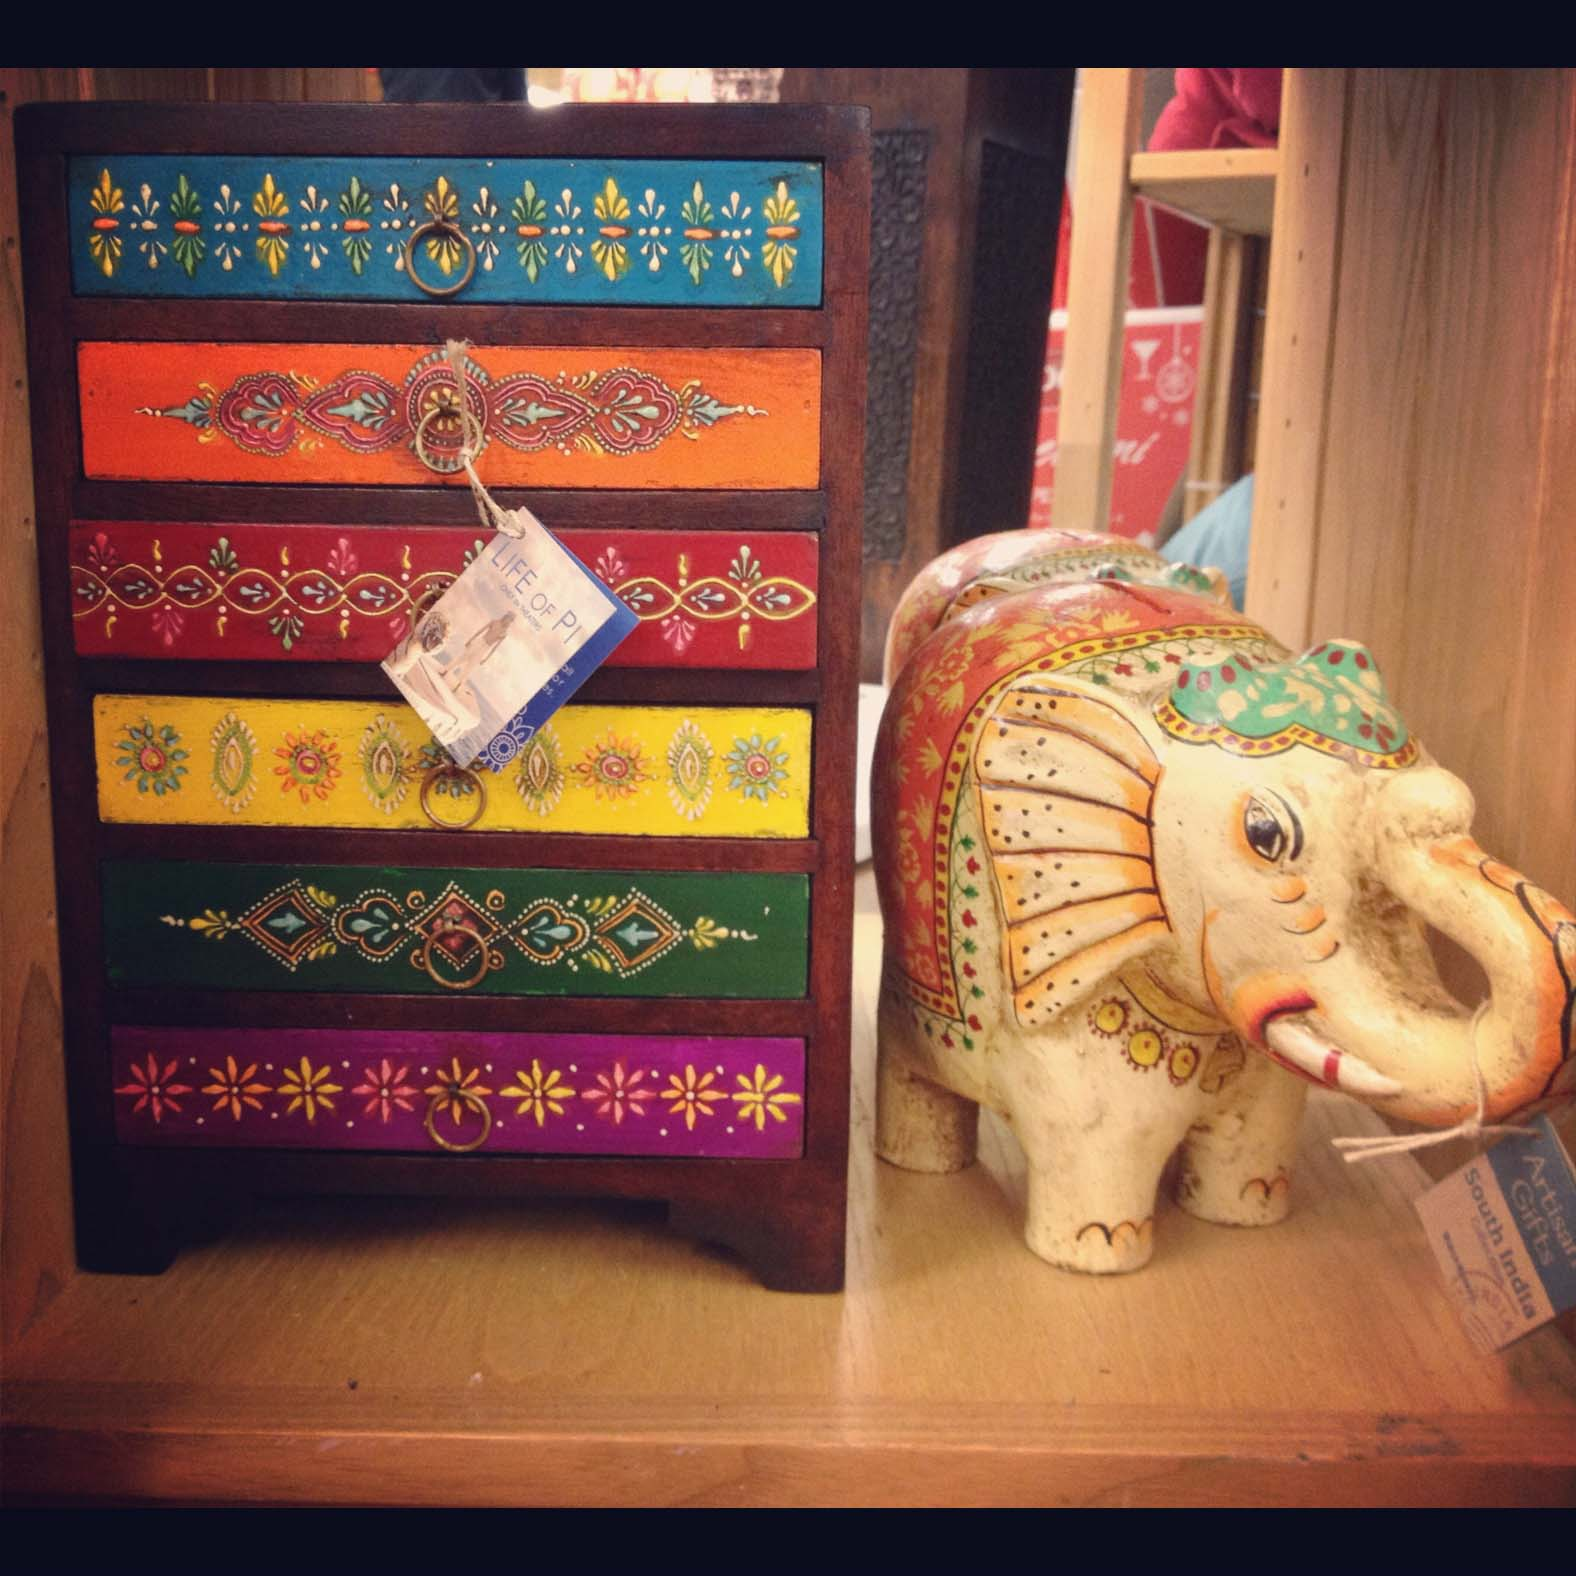 Home Decor Online Stores India: Adding Color To Your Decor